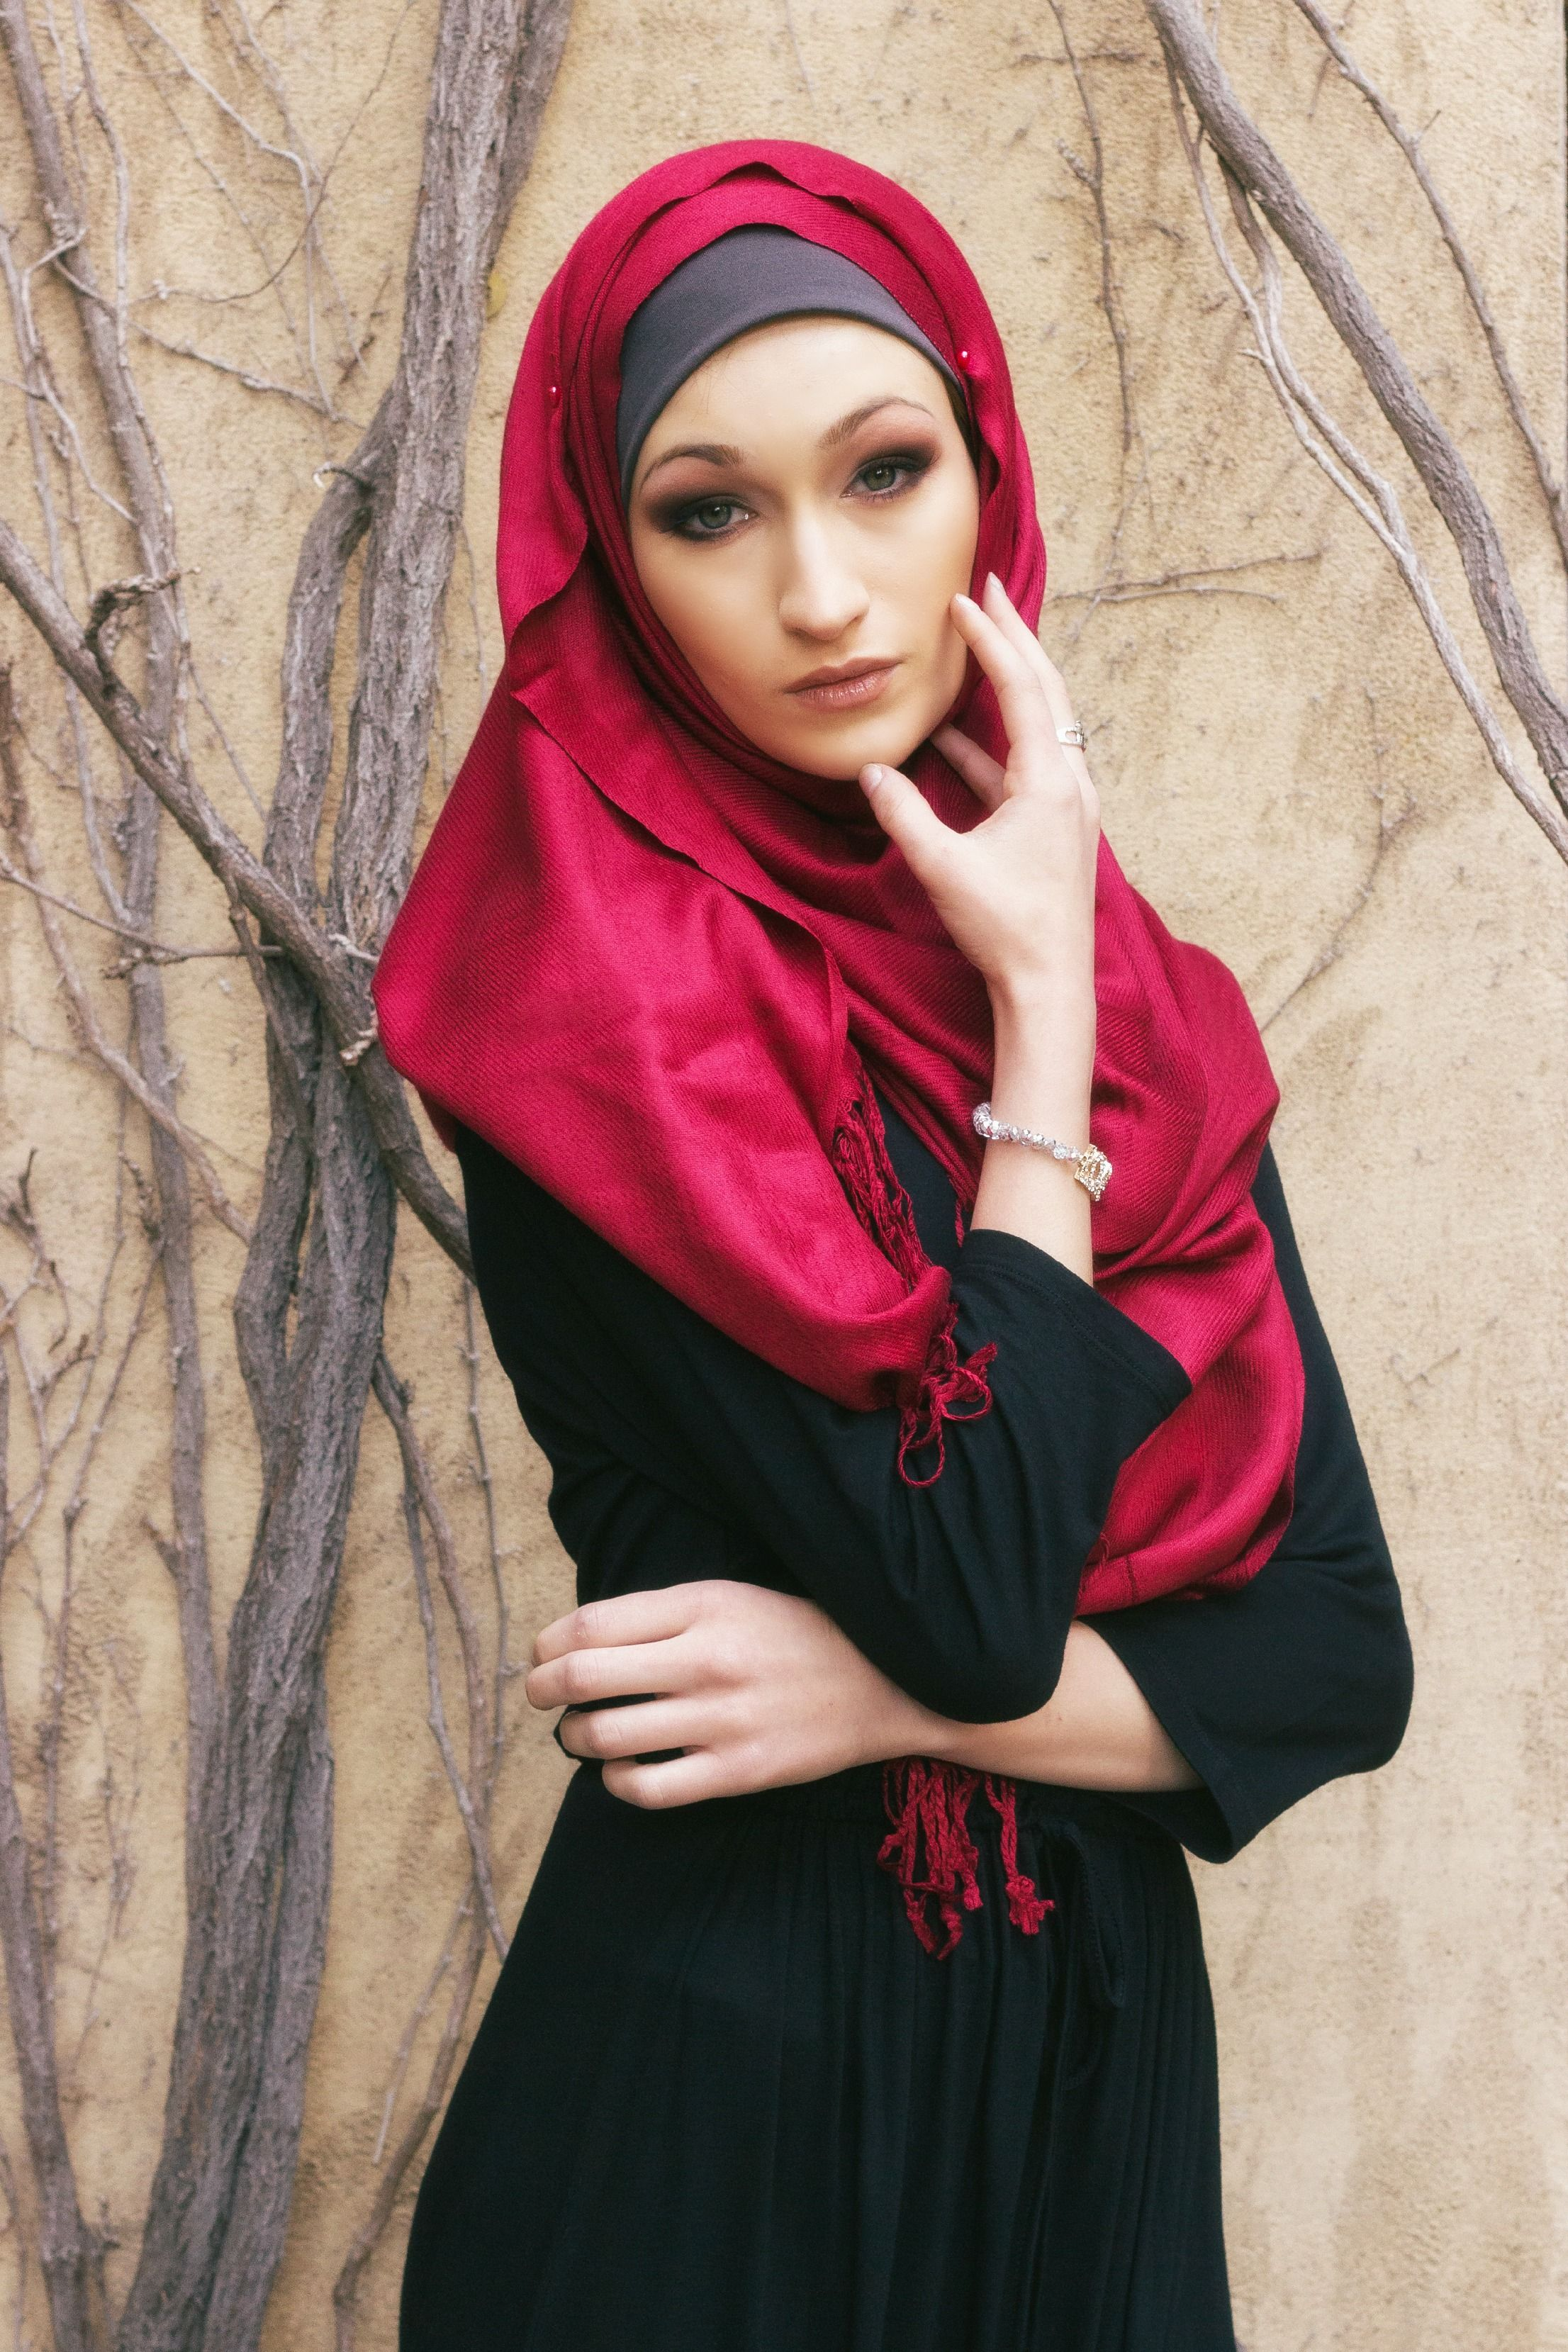 899c179487f78 Brick Red Luxe Pashmina Hijab  Hijab Gorgeous Get yours today they are Buy  3 get